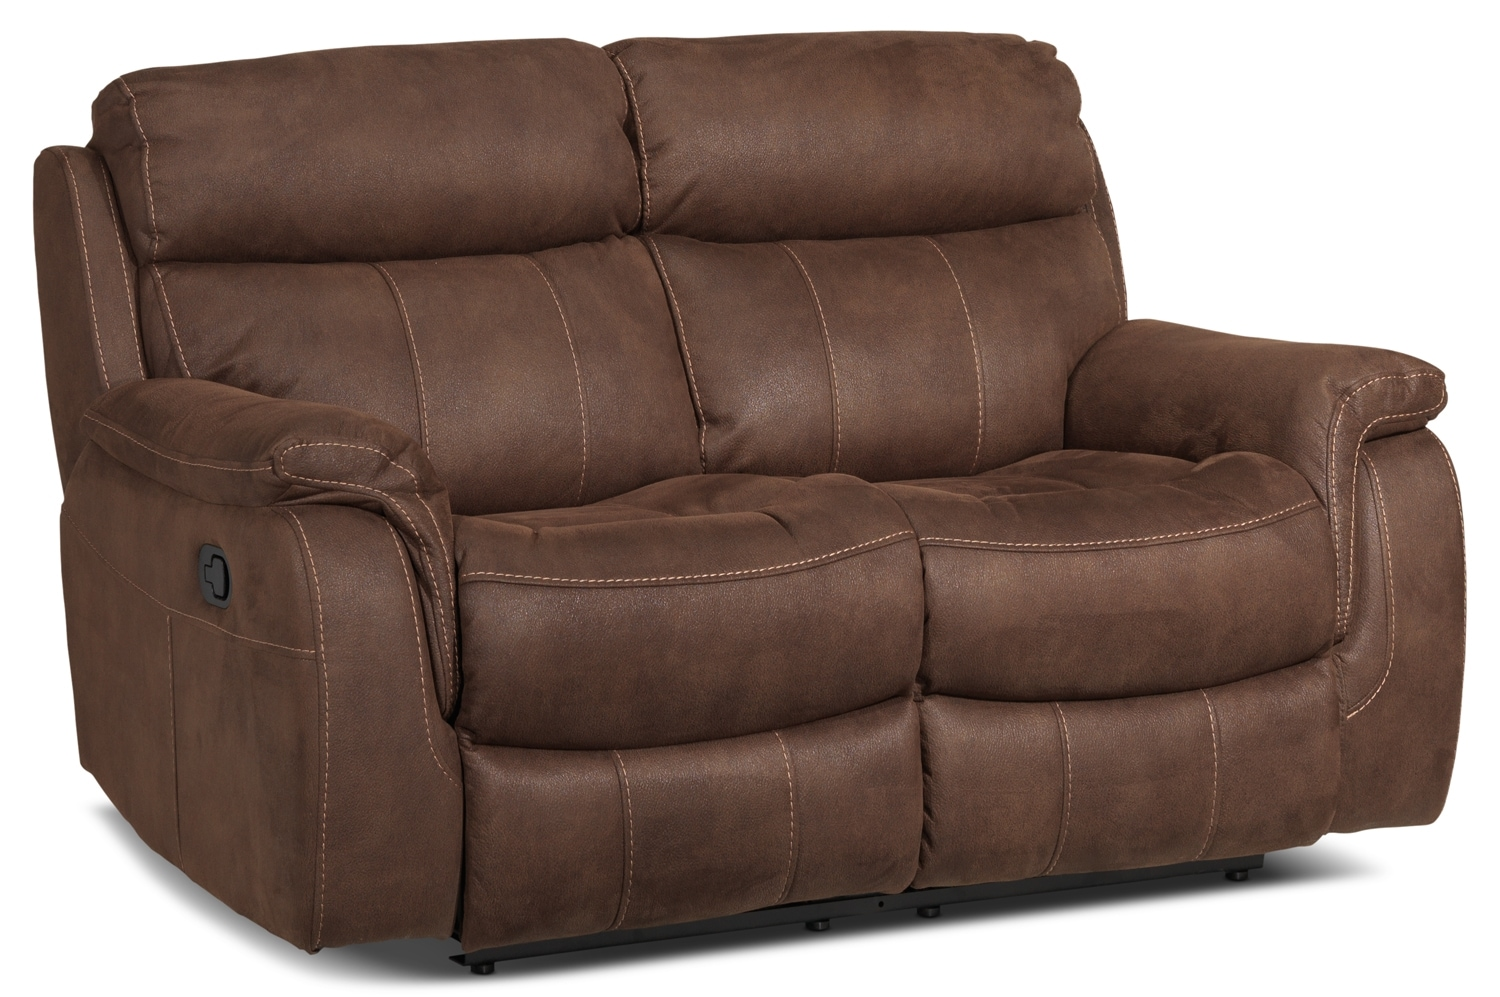 Living Room Furniture - Morrow Reclining Loveseat - Saddle Brown